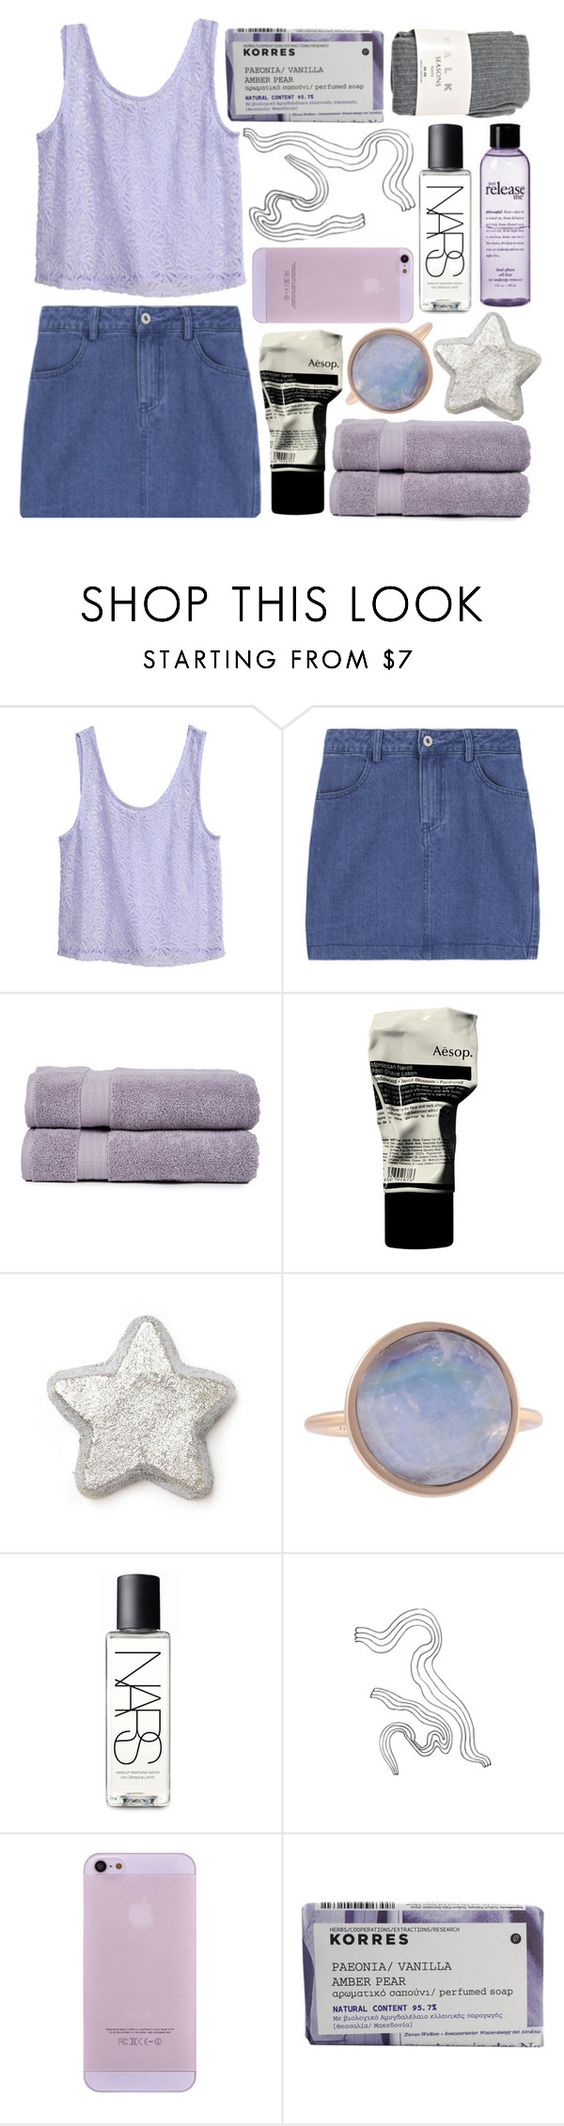 """△ a little party never hurt no one, not you and me△"" by alaskas-diary ❤ liked on Polyvore featuring beauty, H&M, Pure Fiber, Aesop, Kelly Wearstler, NARS Cosmetics, Korres and Falke"